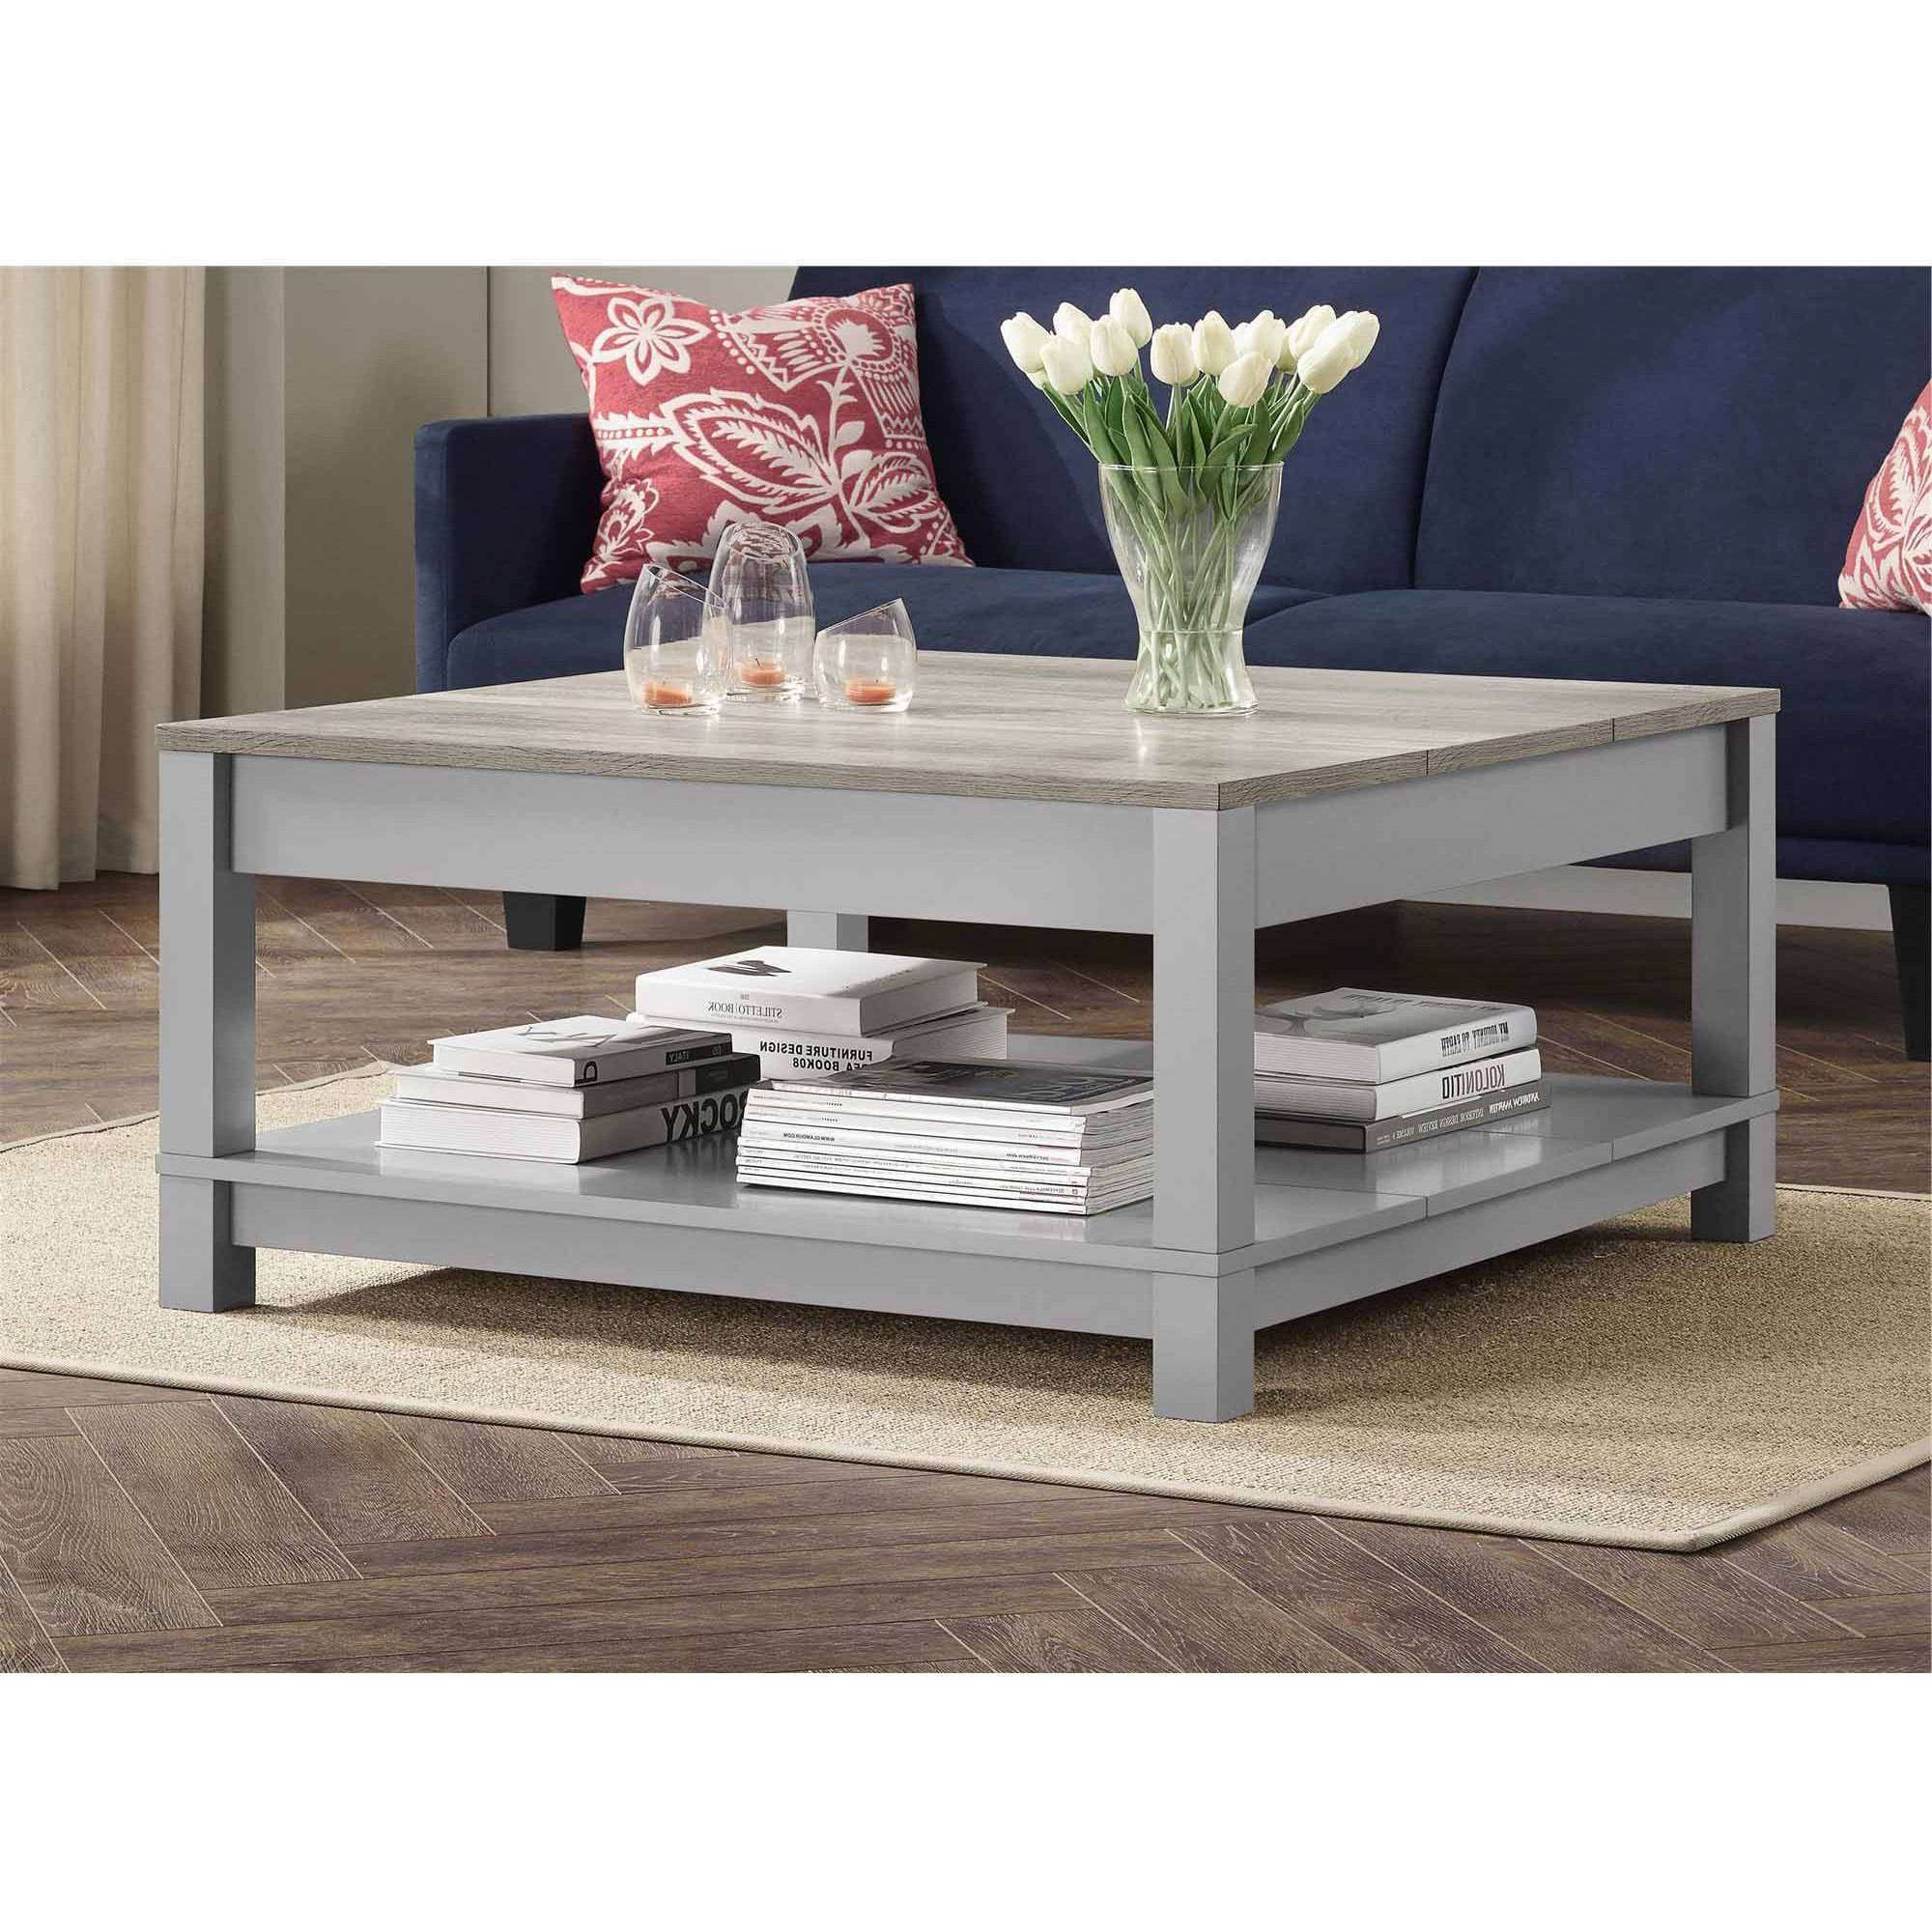 Most Up To Date Grey Wood Coffee Tables Inside Better Homes And Gardens Langley Bay Coffee Table, Multiple Colors (View 16 of 20)